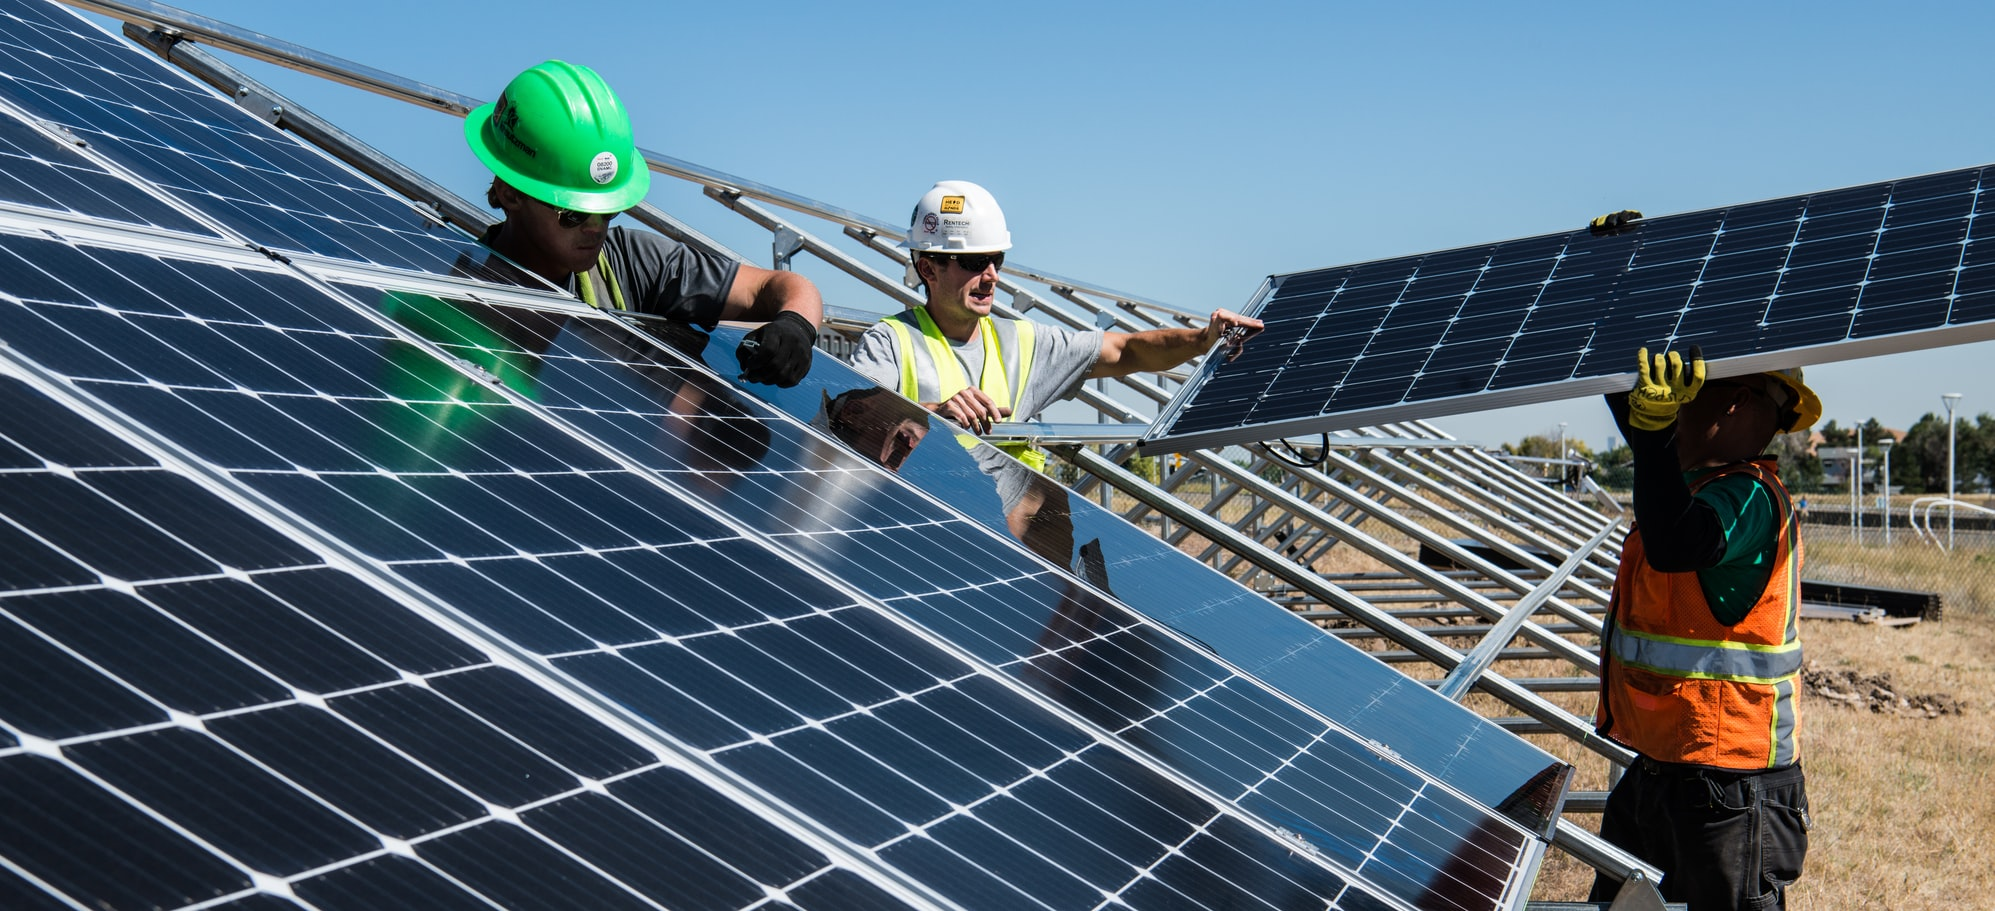 Workers fitting Solar Panels - 50001 Energy